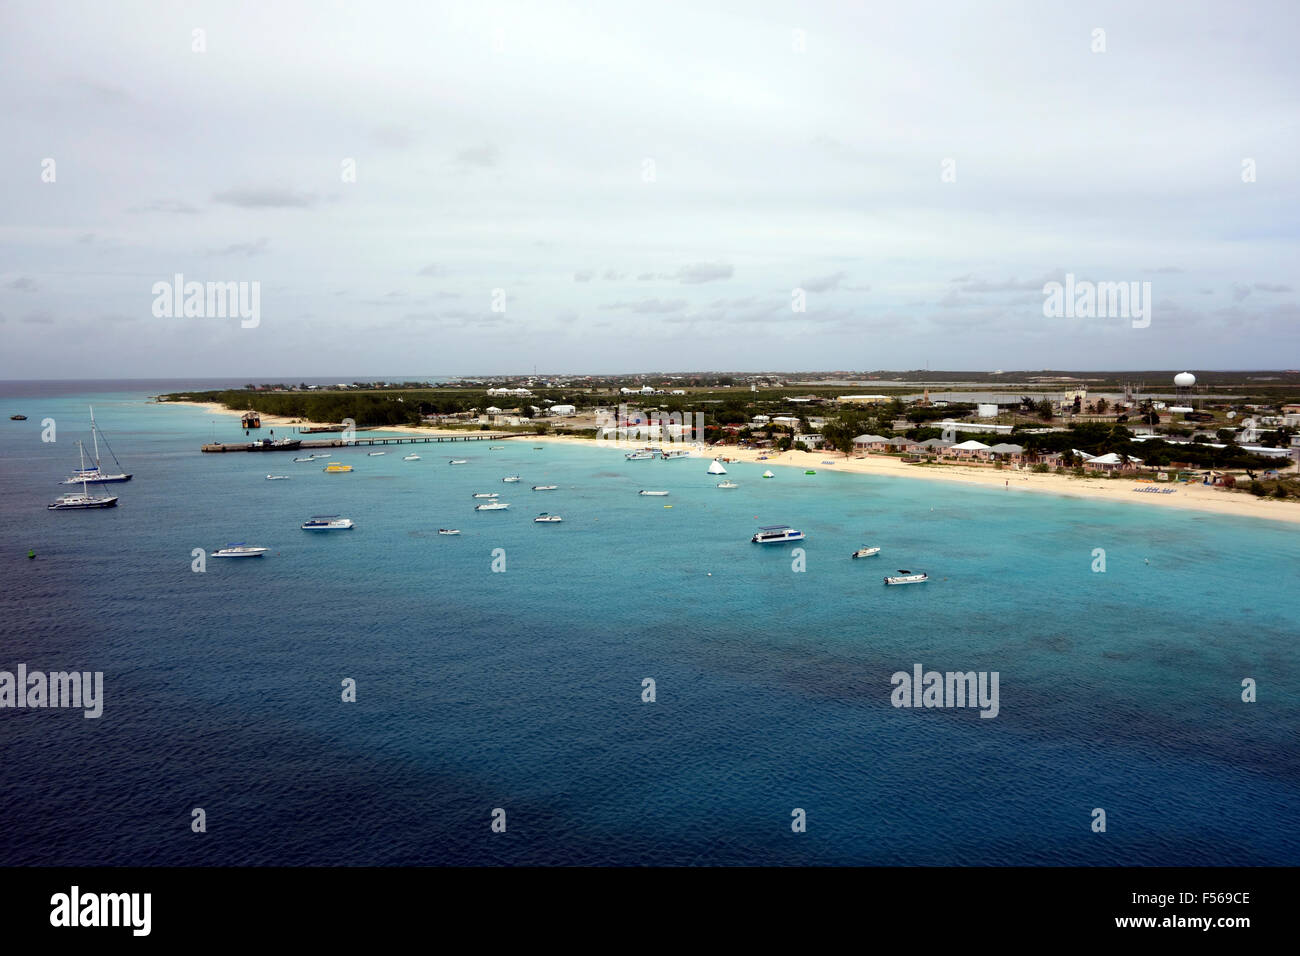 Panoramic view of Grand Turk from above, Grand Turk, Turks  and Caicos, Caribbean - Stock Image